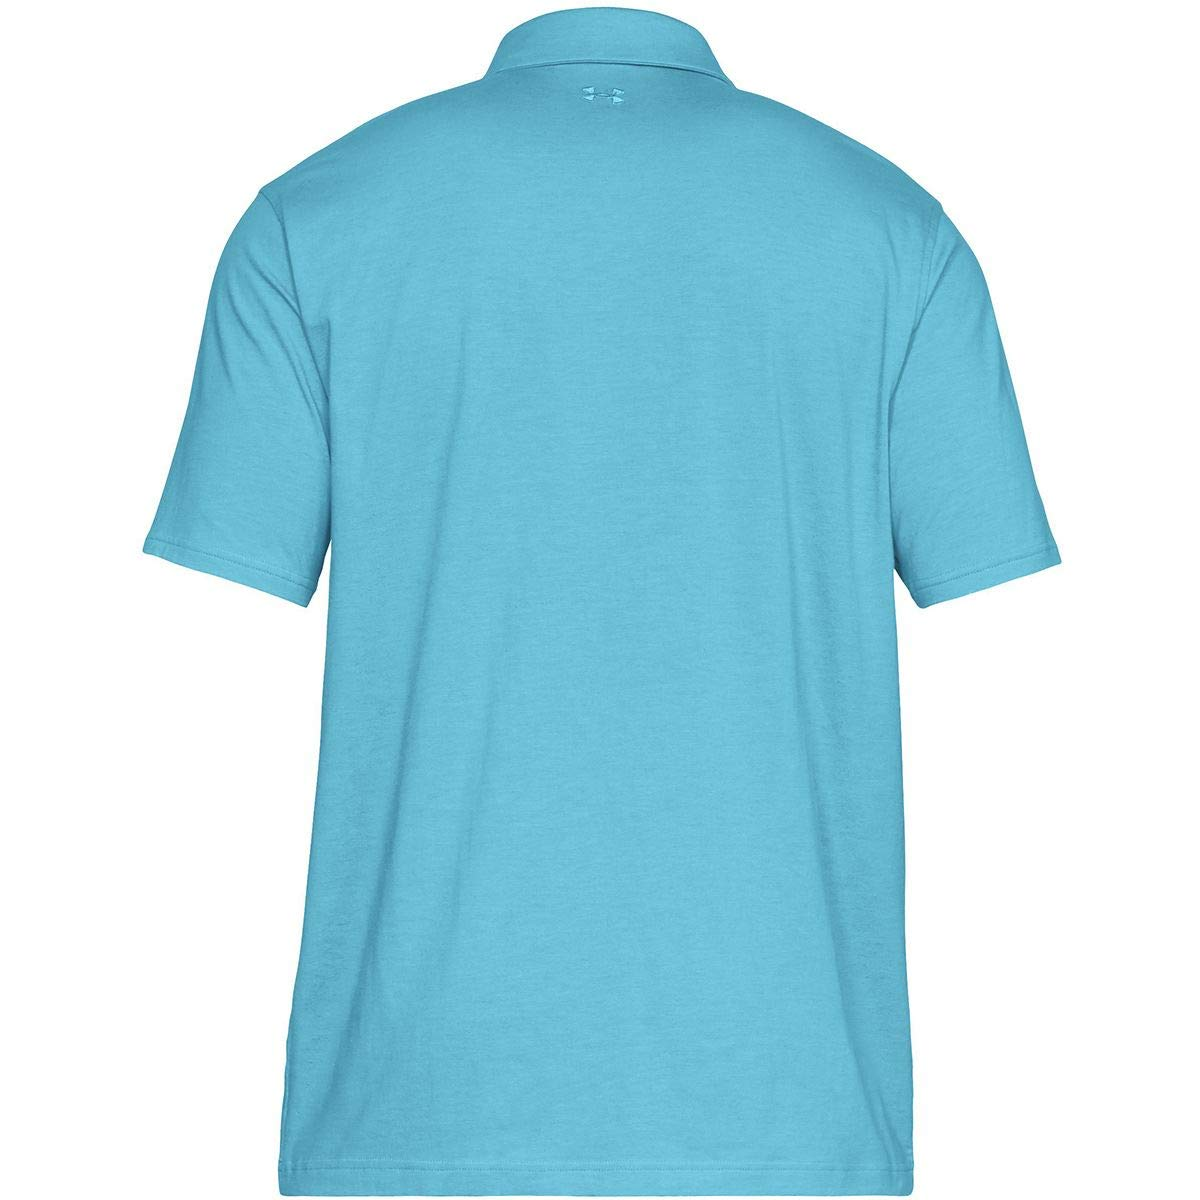 a88c0385 Amazon.com: Under Armour Men's Charged Cotton Scramble Golf Polo: Clothing